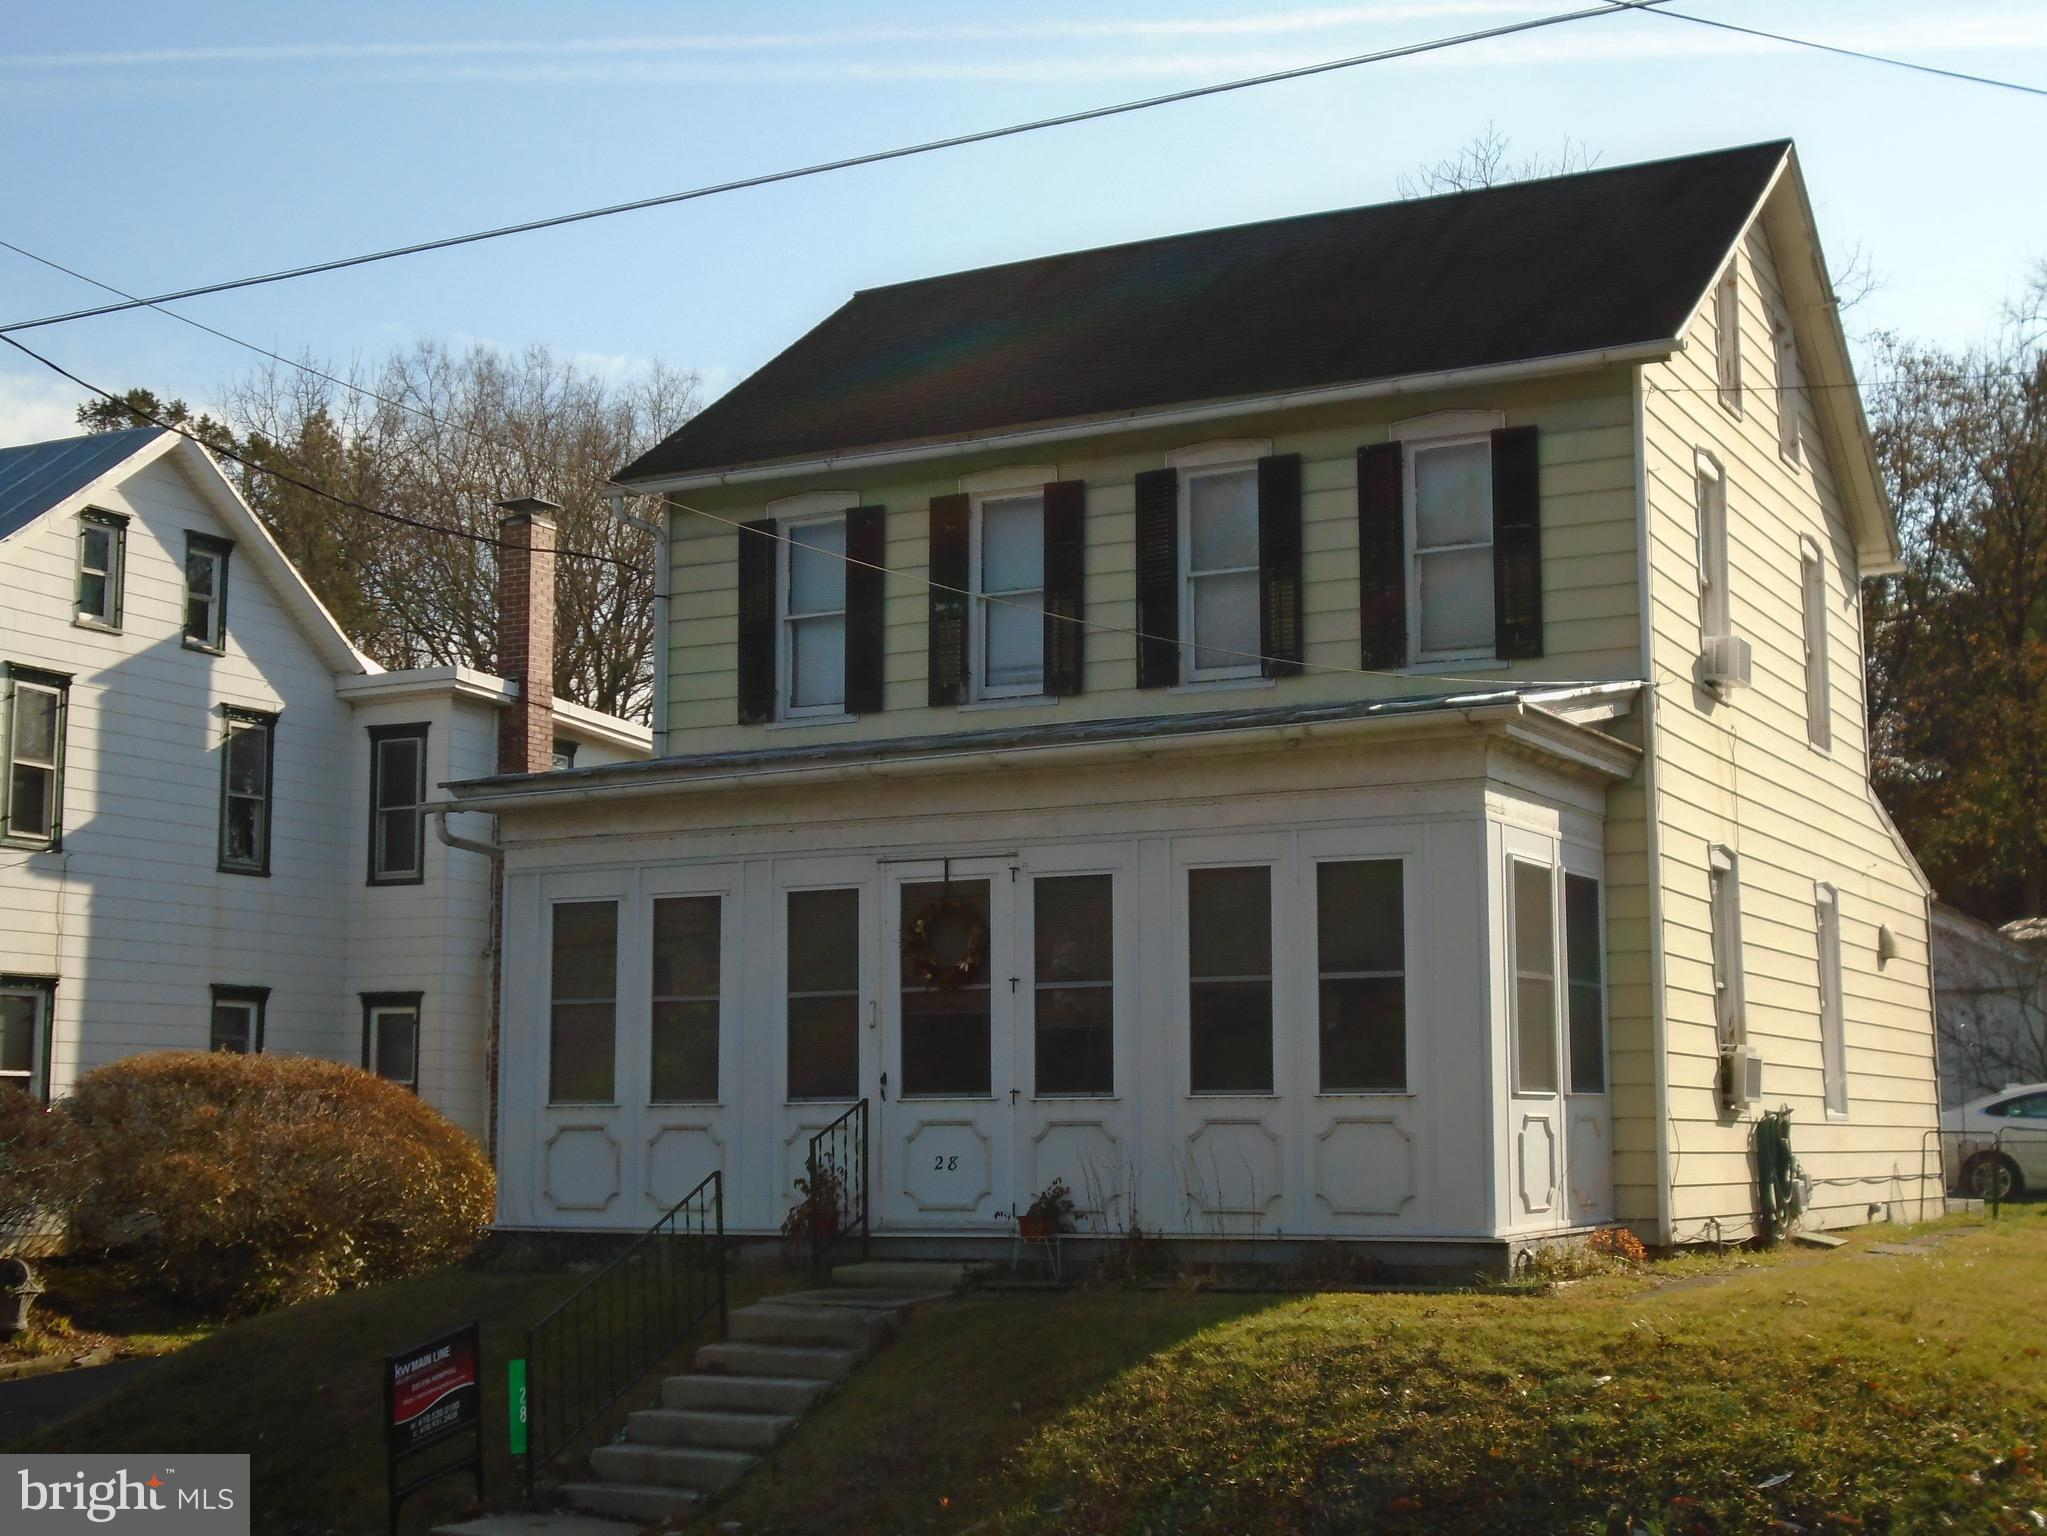 28 Main, Brownstown, PA 17508